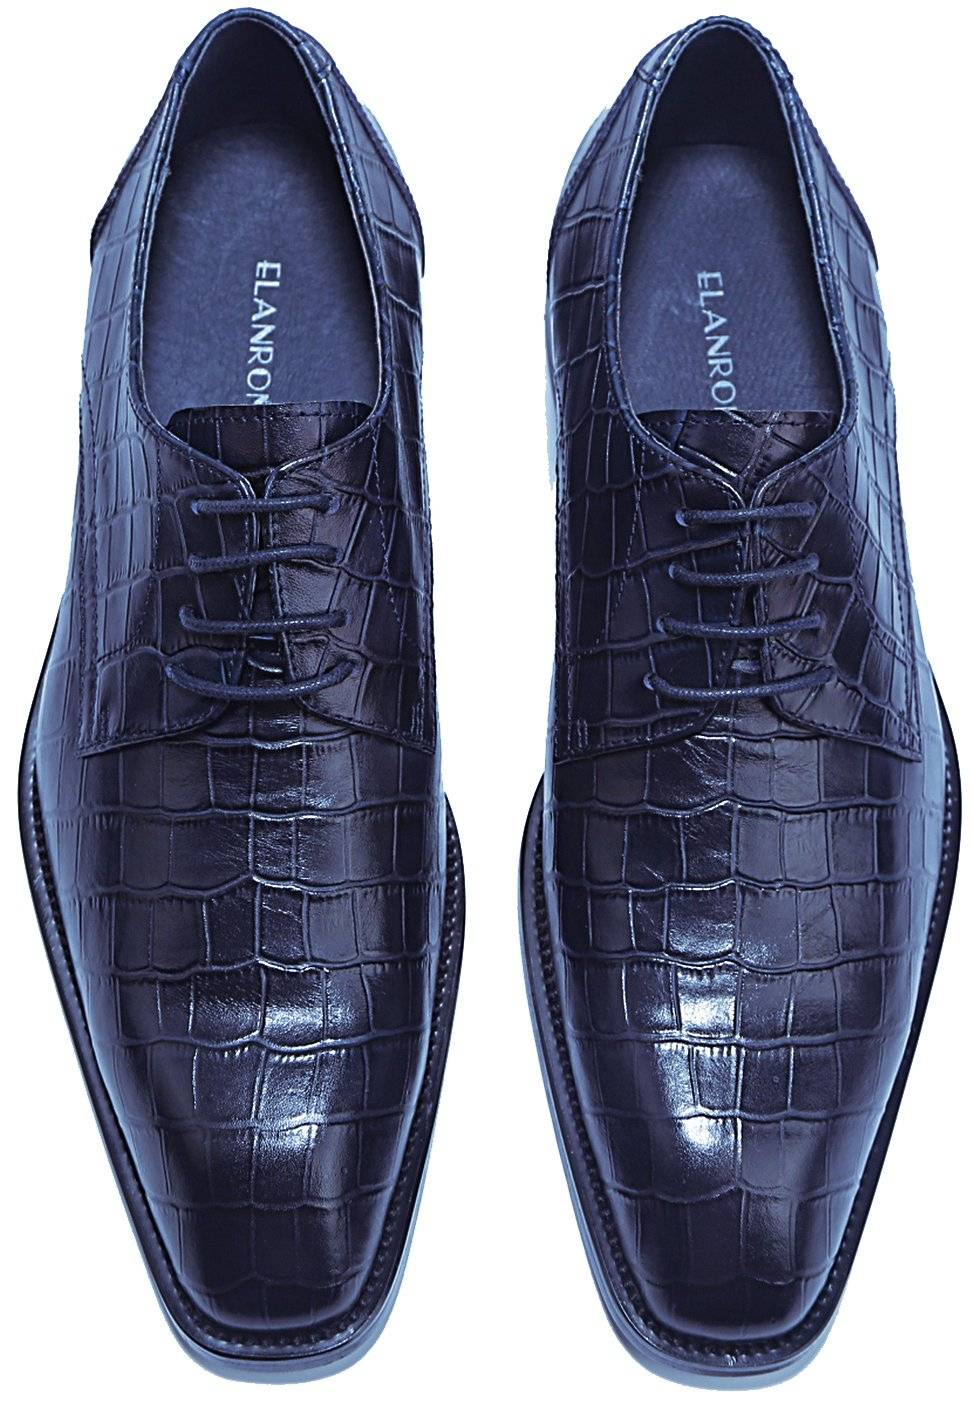 ELANROMAN Crocodile Pattern Leather Shoes Men's Oxford Luxury Dress Shoes Embossed Leather Shoes Navy US 13 EUR 47 Foot Length 329.30mm